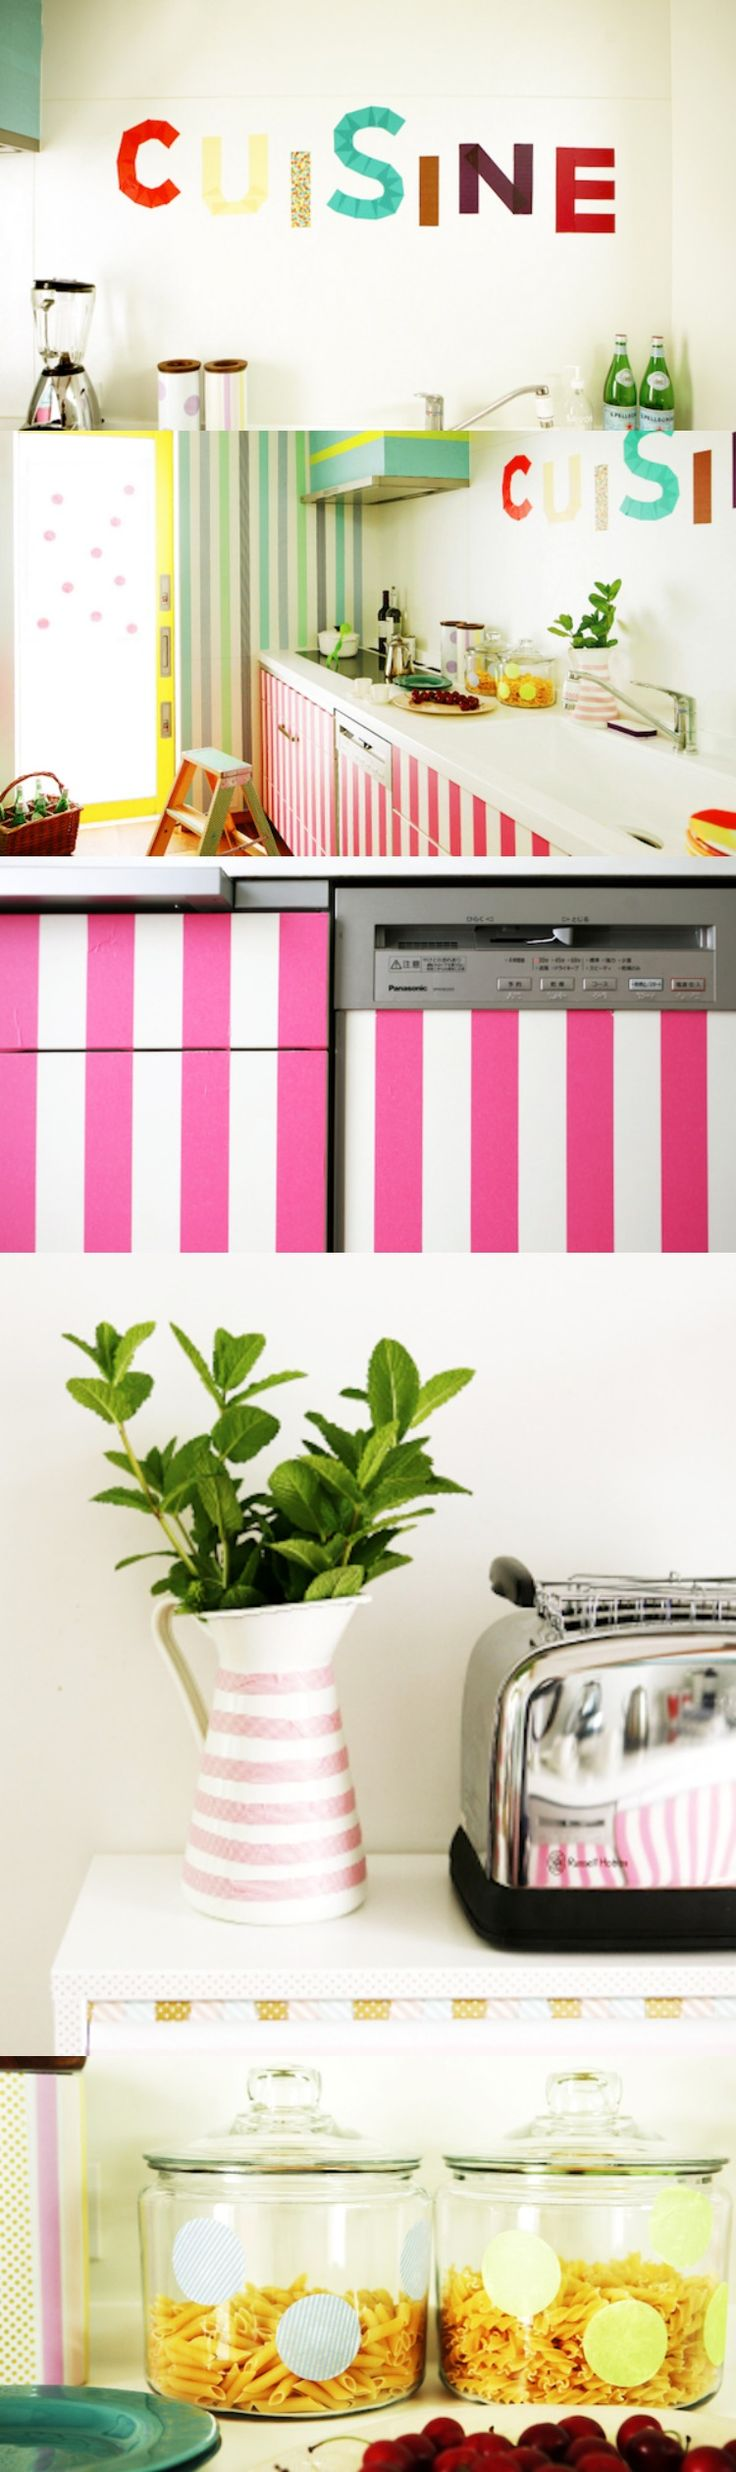 How to Decorate Your Kitchen with Washi Tape